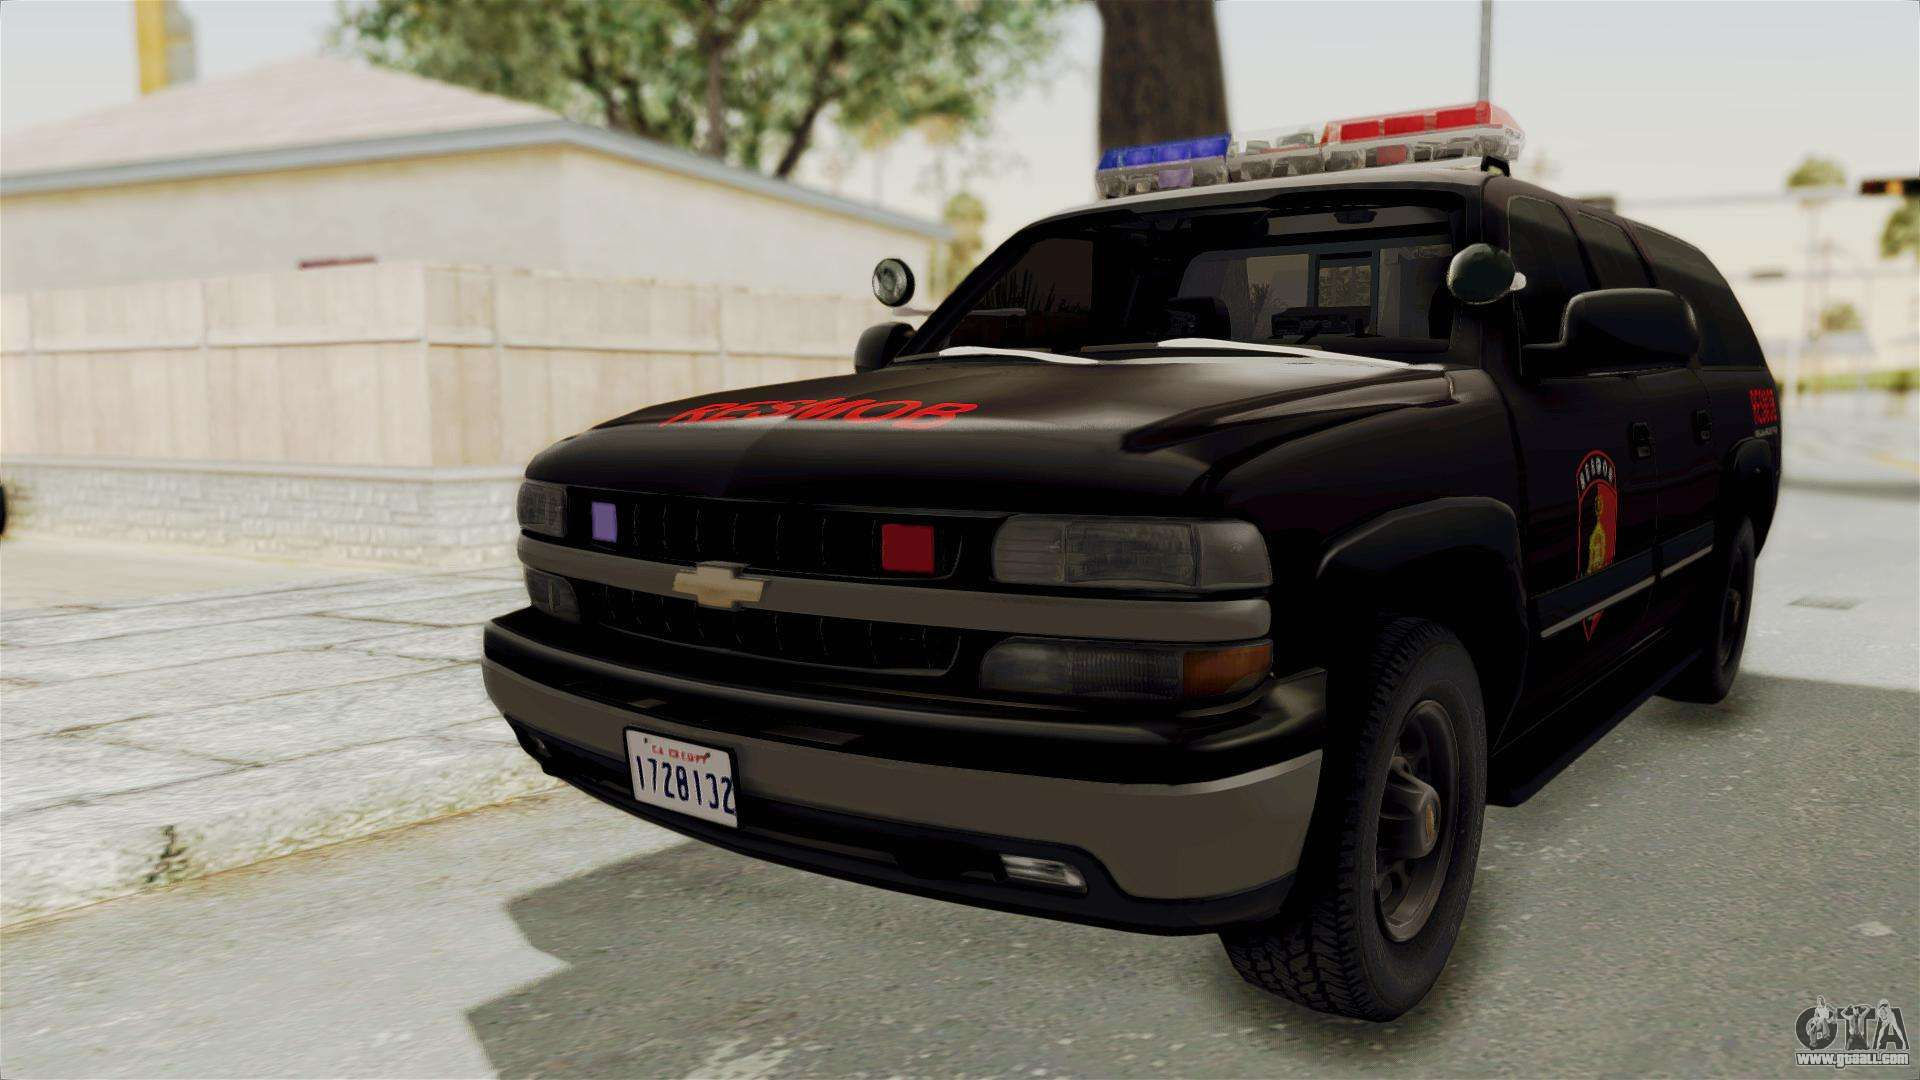 Chevrolet suburban indonesian police resmob unit for gta san andreas back left view